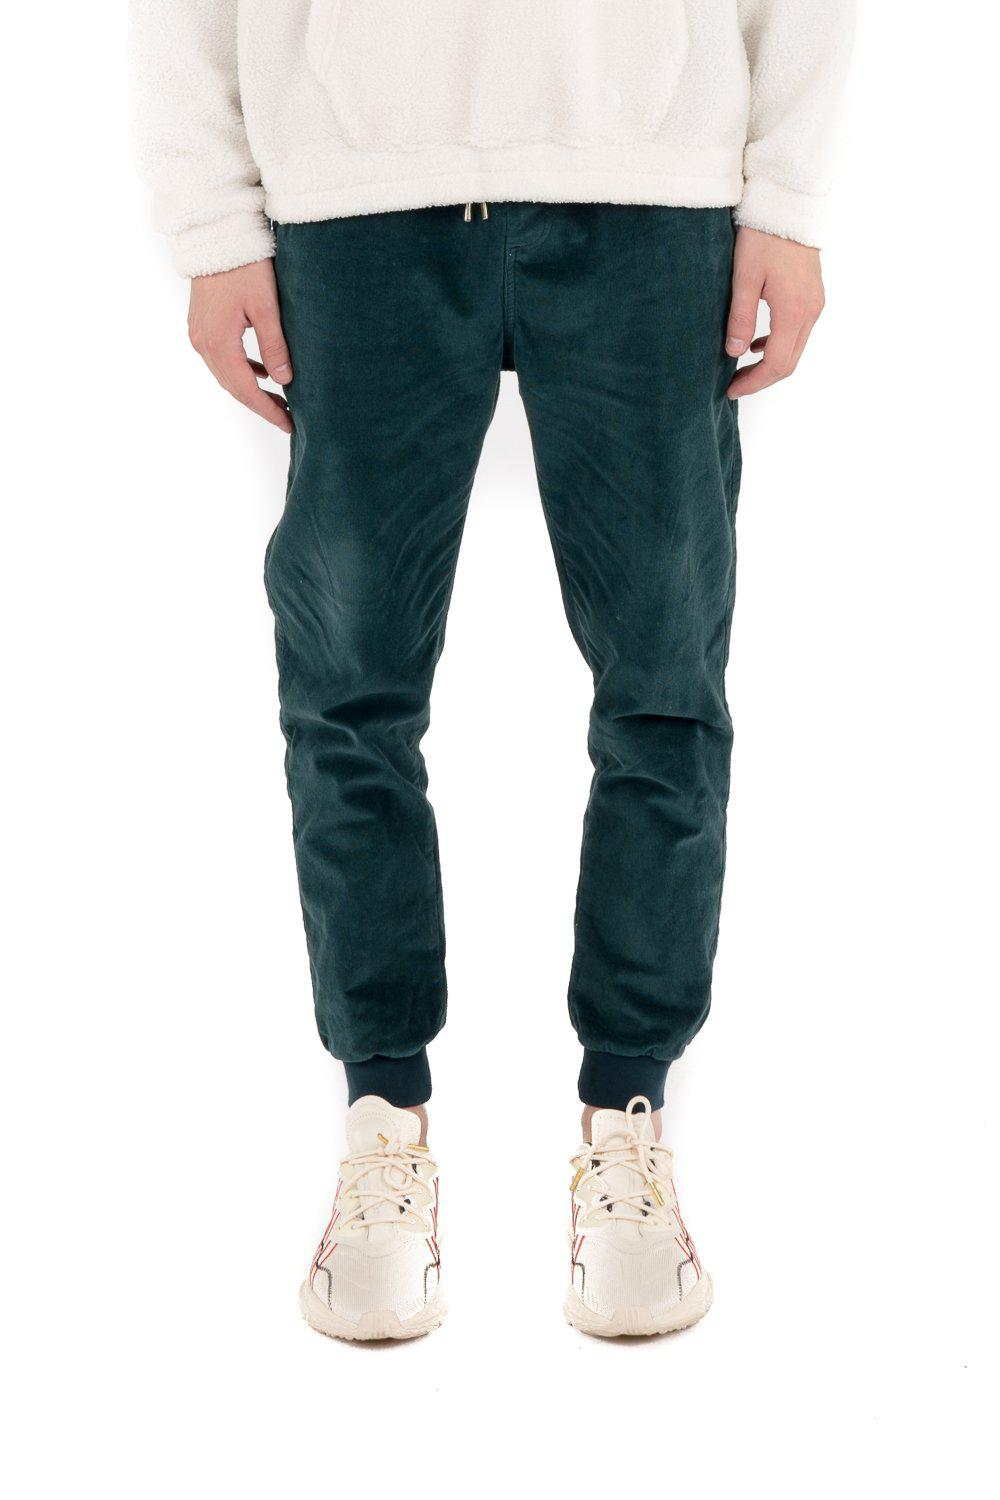 Kuwalla Tee Corduroy Jogger in Teal-The Trendy Walrus